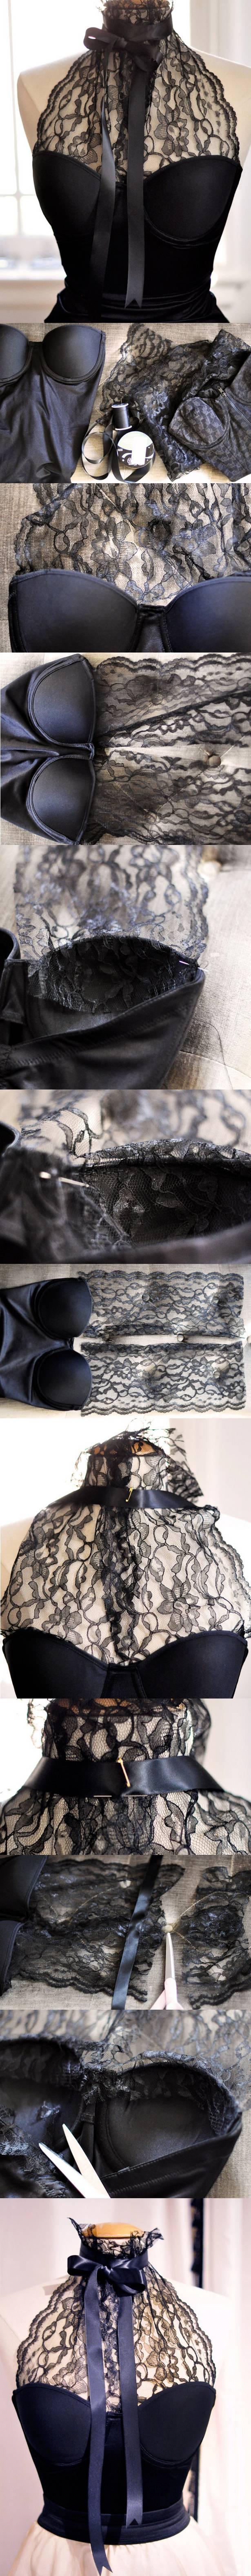 DIY LACE HALTER BUSTIER Pictures, Photos, and Images for Facebook